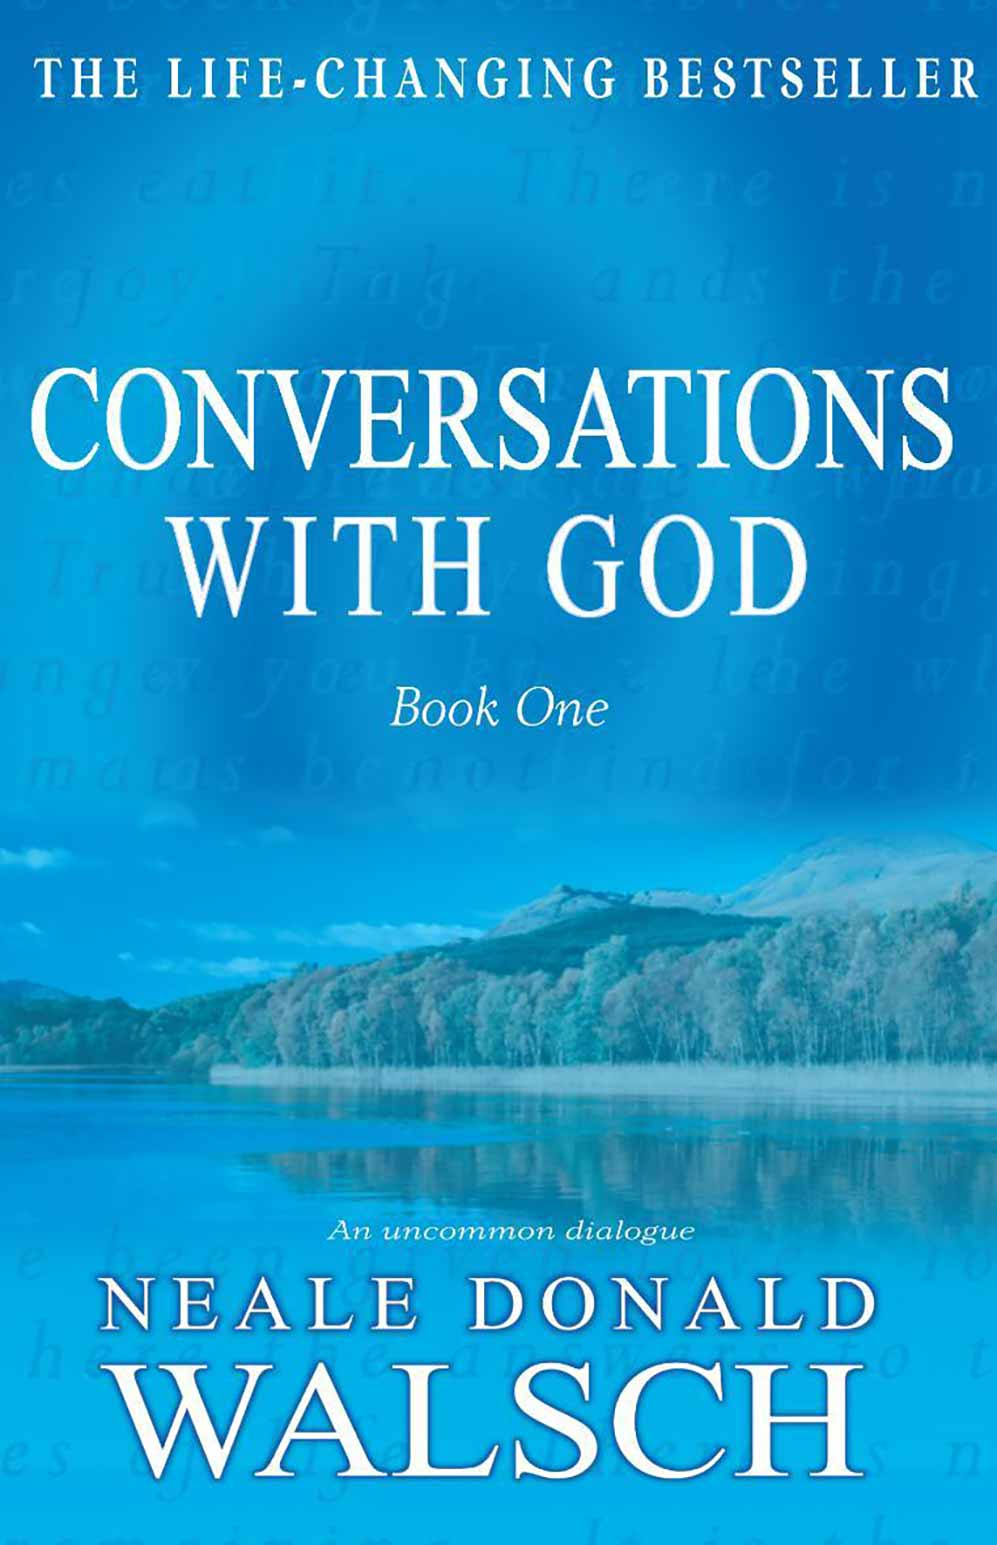 conversations with god, book 1 - book cover